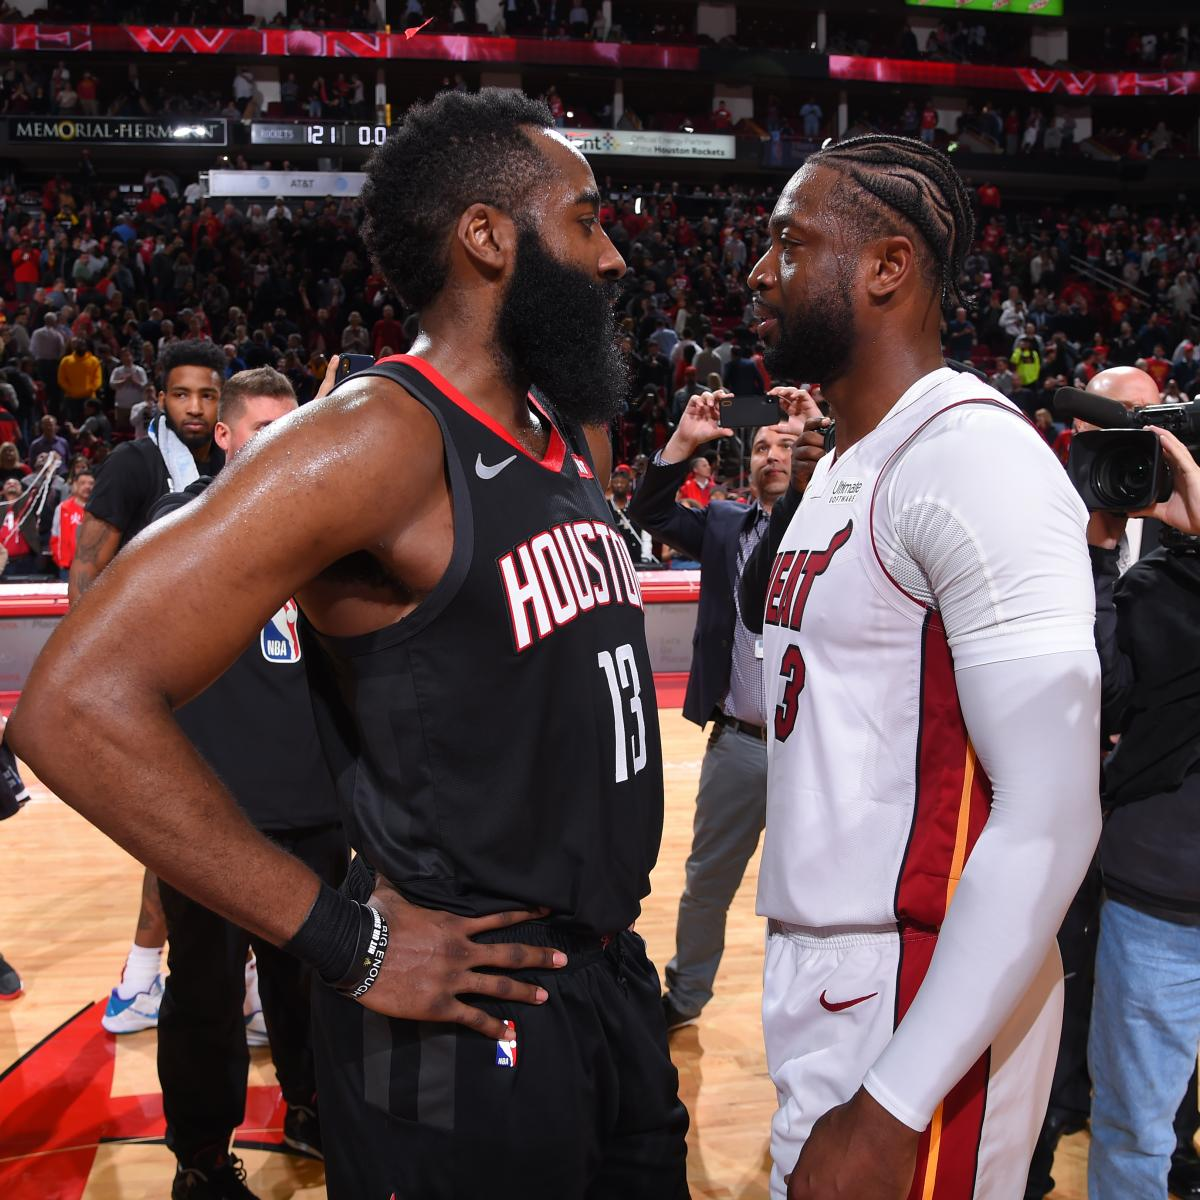 Nba2k19 James Harden: Dwyane Wade: James Harden 'One Of The Most Unguardable